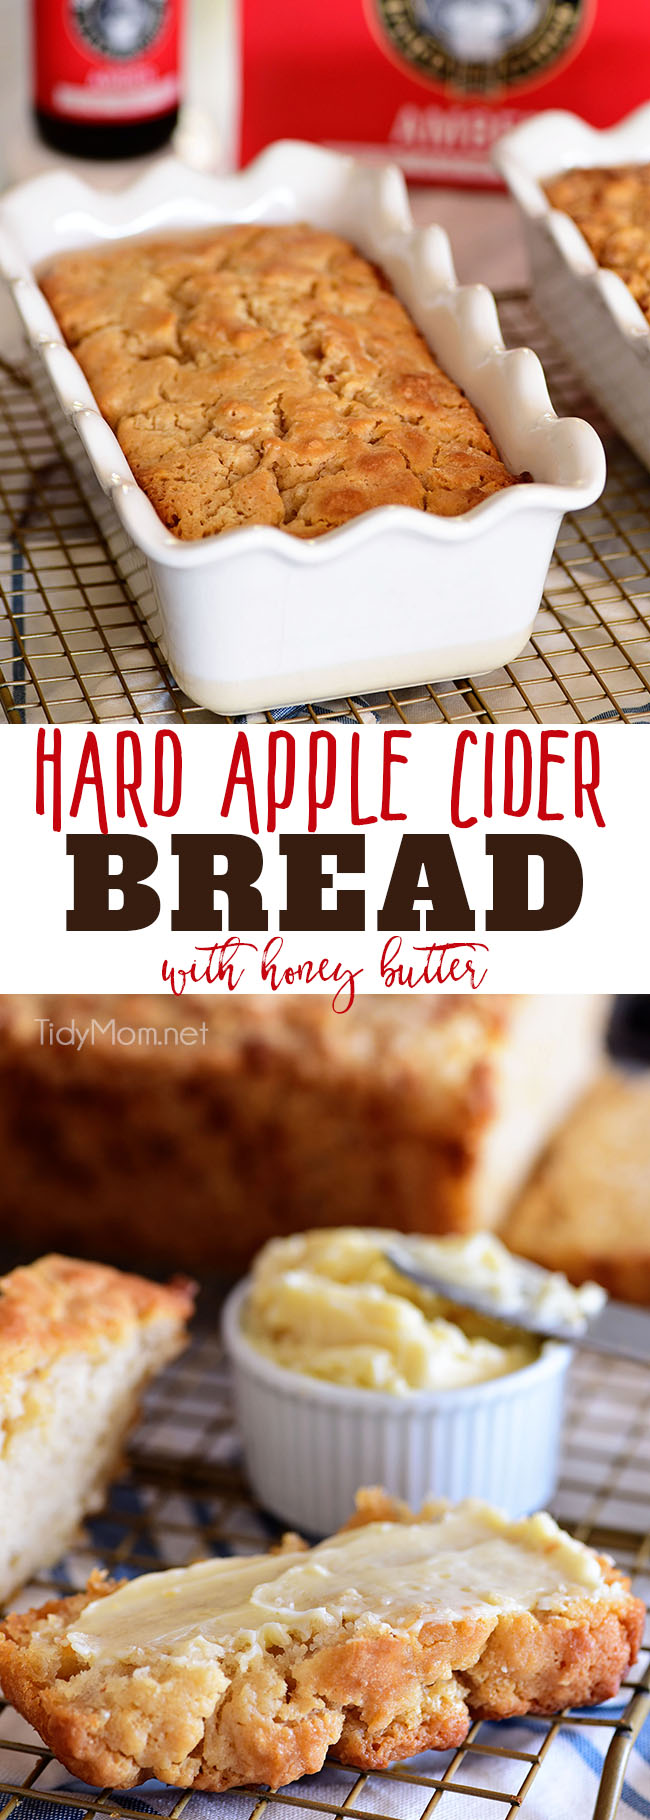 If you enjoy beer bread, you need to try this Hard Apple Cider Bread for fall!! It's super simple to make. The top buttery crust layer is thick and crunchy, making it the perfect companion to soups, dips, honey butter and more! Print the full recipe at TidyMom.net #quickbread #beerbread #hardcider #recipe